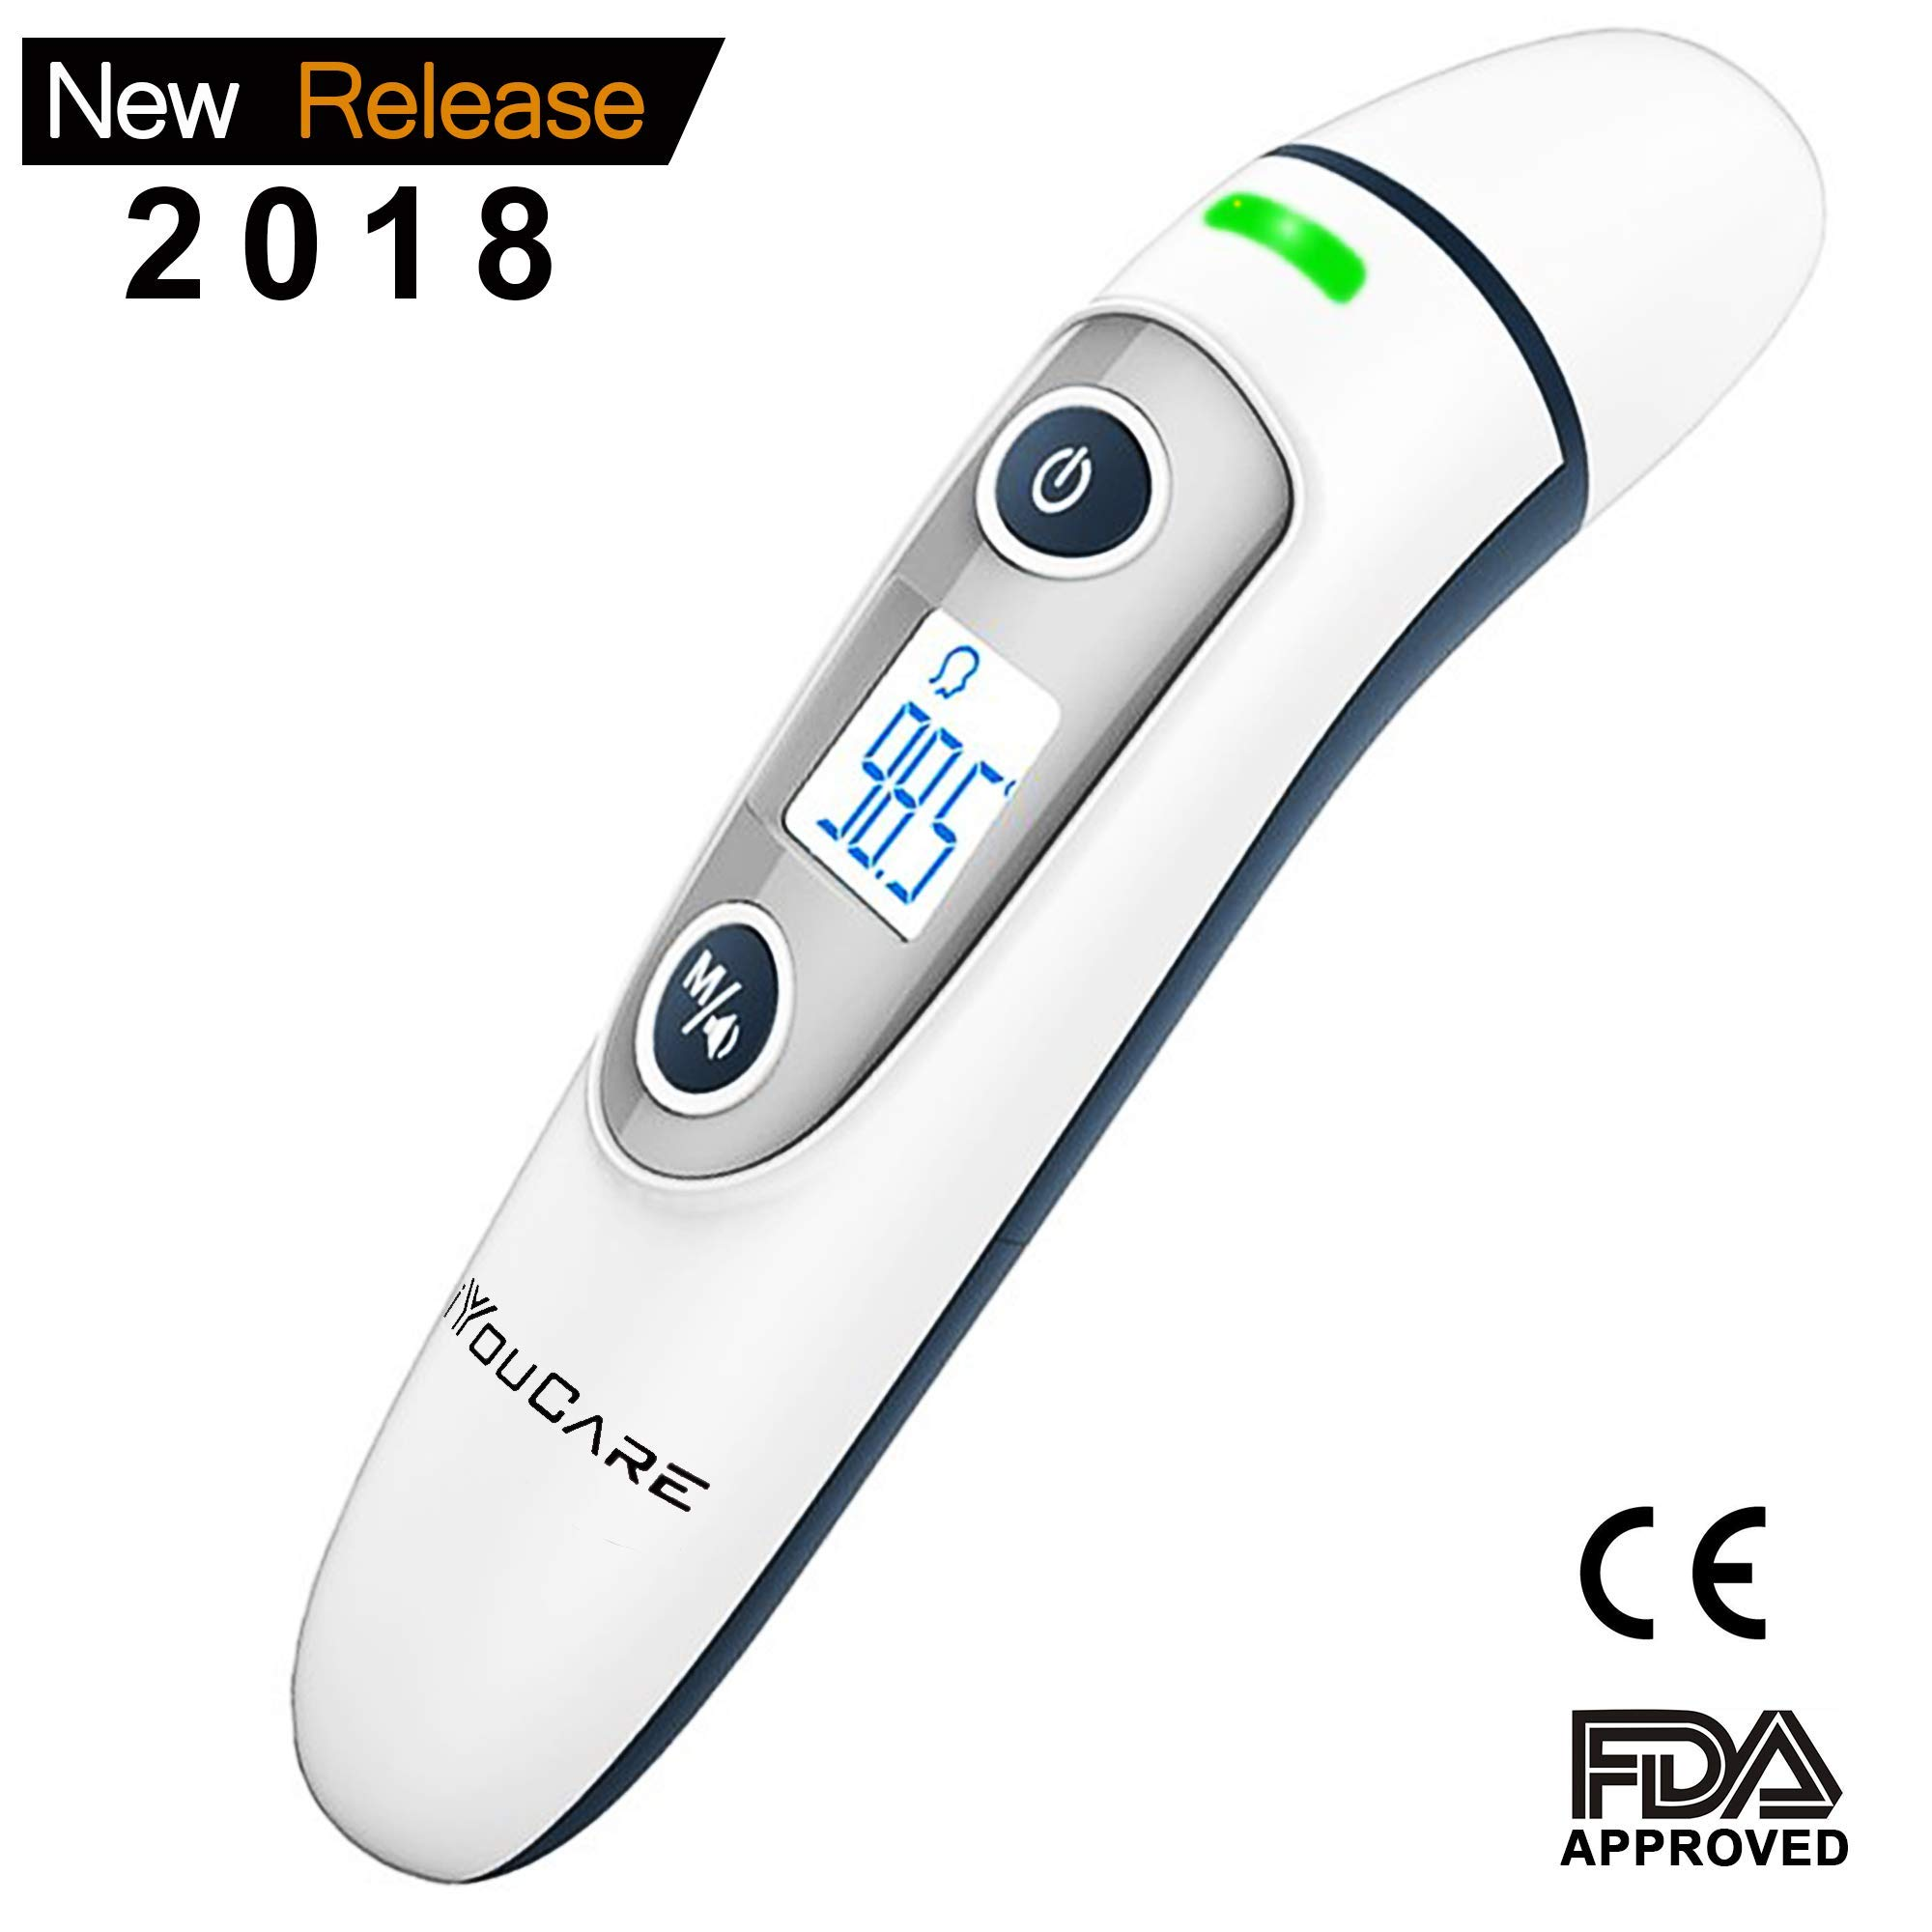 iYouCare Baby Forehead and Ear Thermometer, Digital Infrared no Contact Thermometer with FDA Test and Clinical Accuracy Suitable for Baby Kids Adults